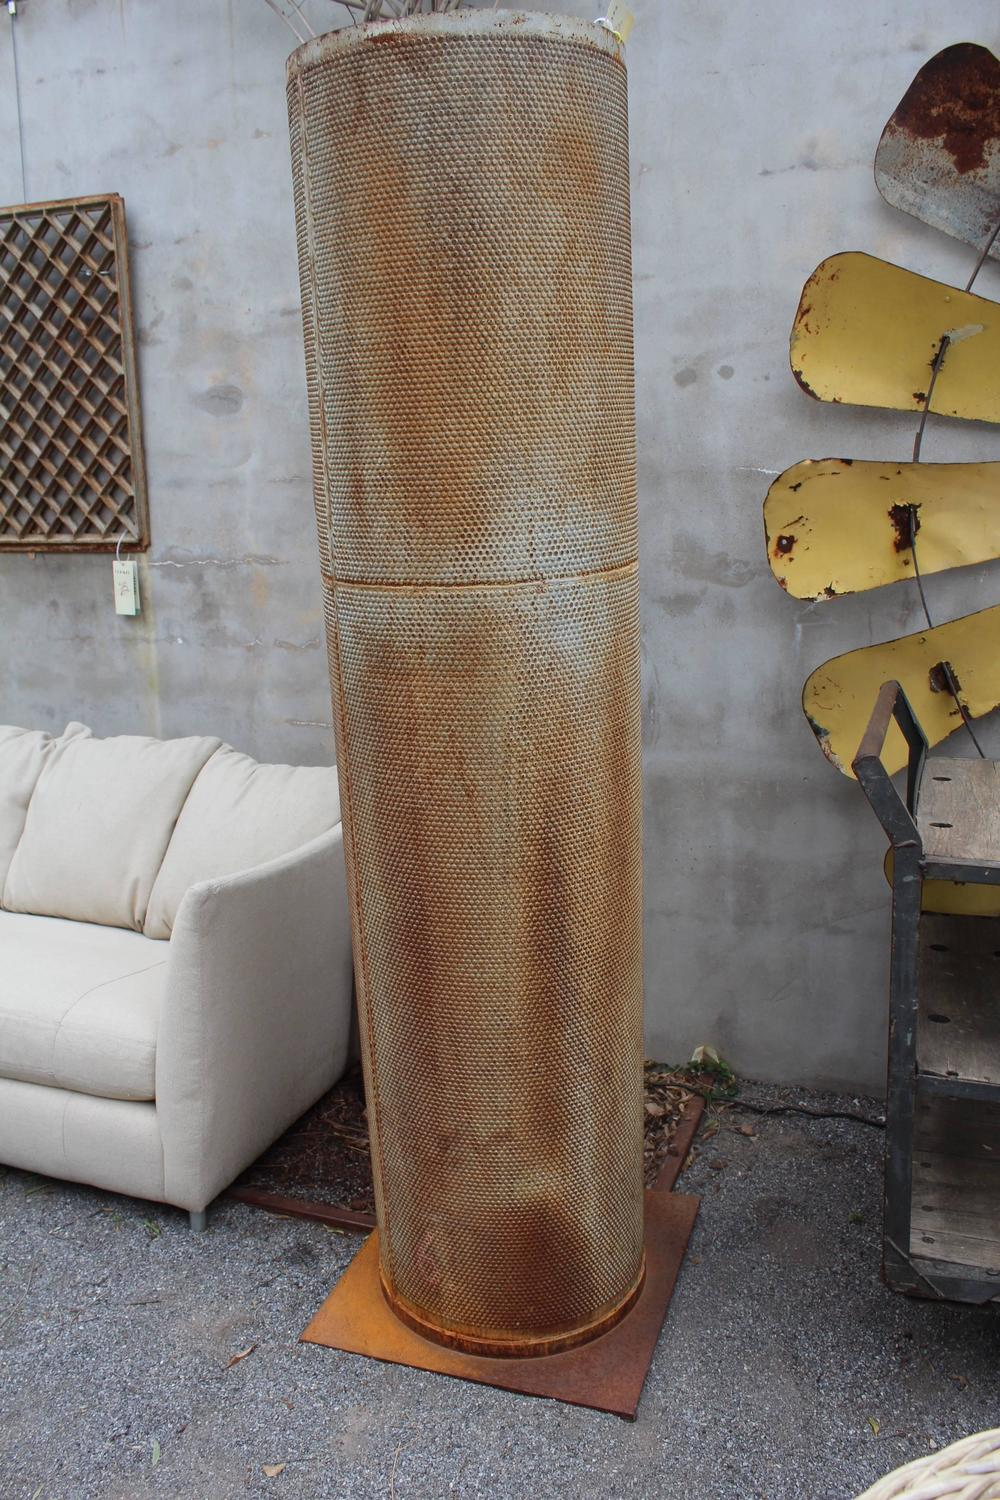 Two French Industrial Mesh Design Garden Pillars  79 U0026quot H  For Sale At 1stdibs